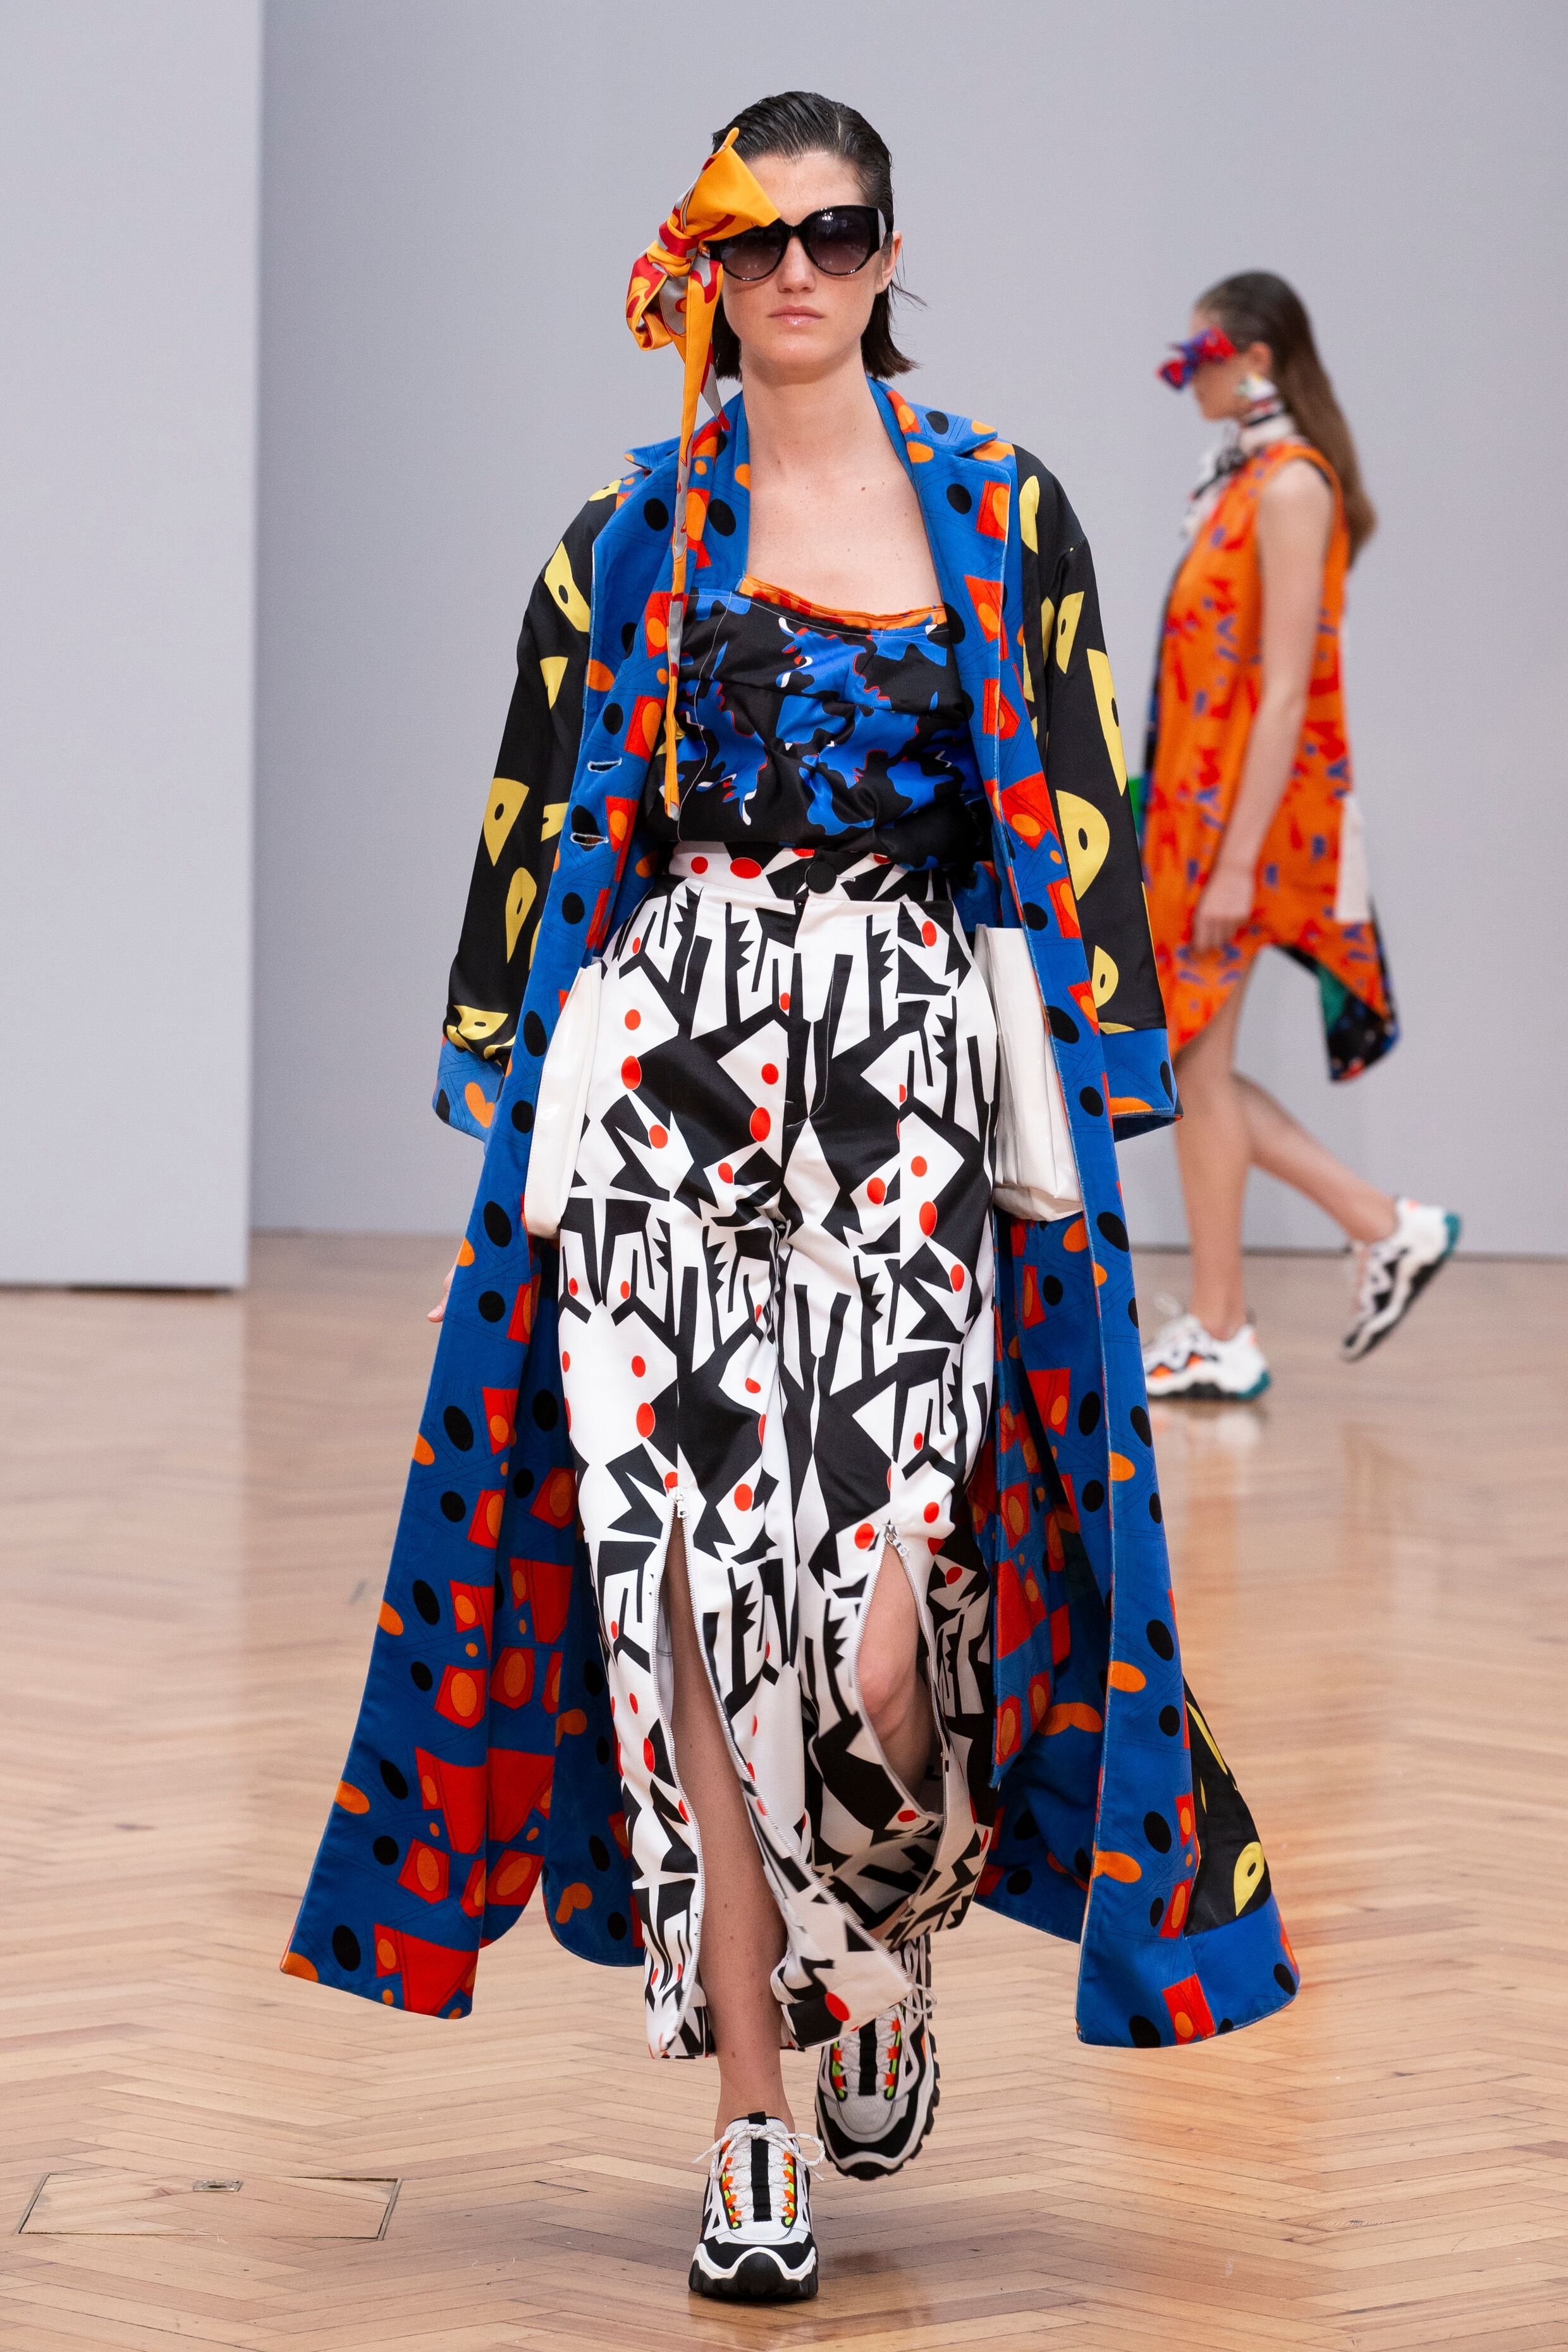 Istituto Marangoni new era fashion show patterned clashing dress